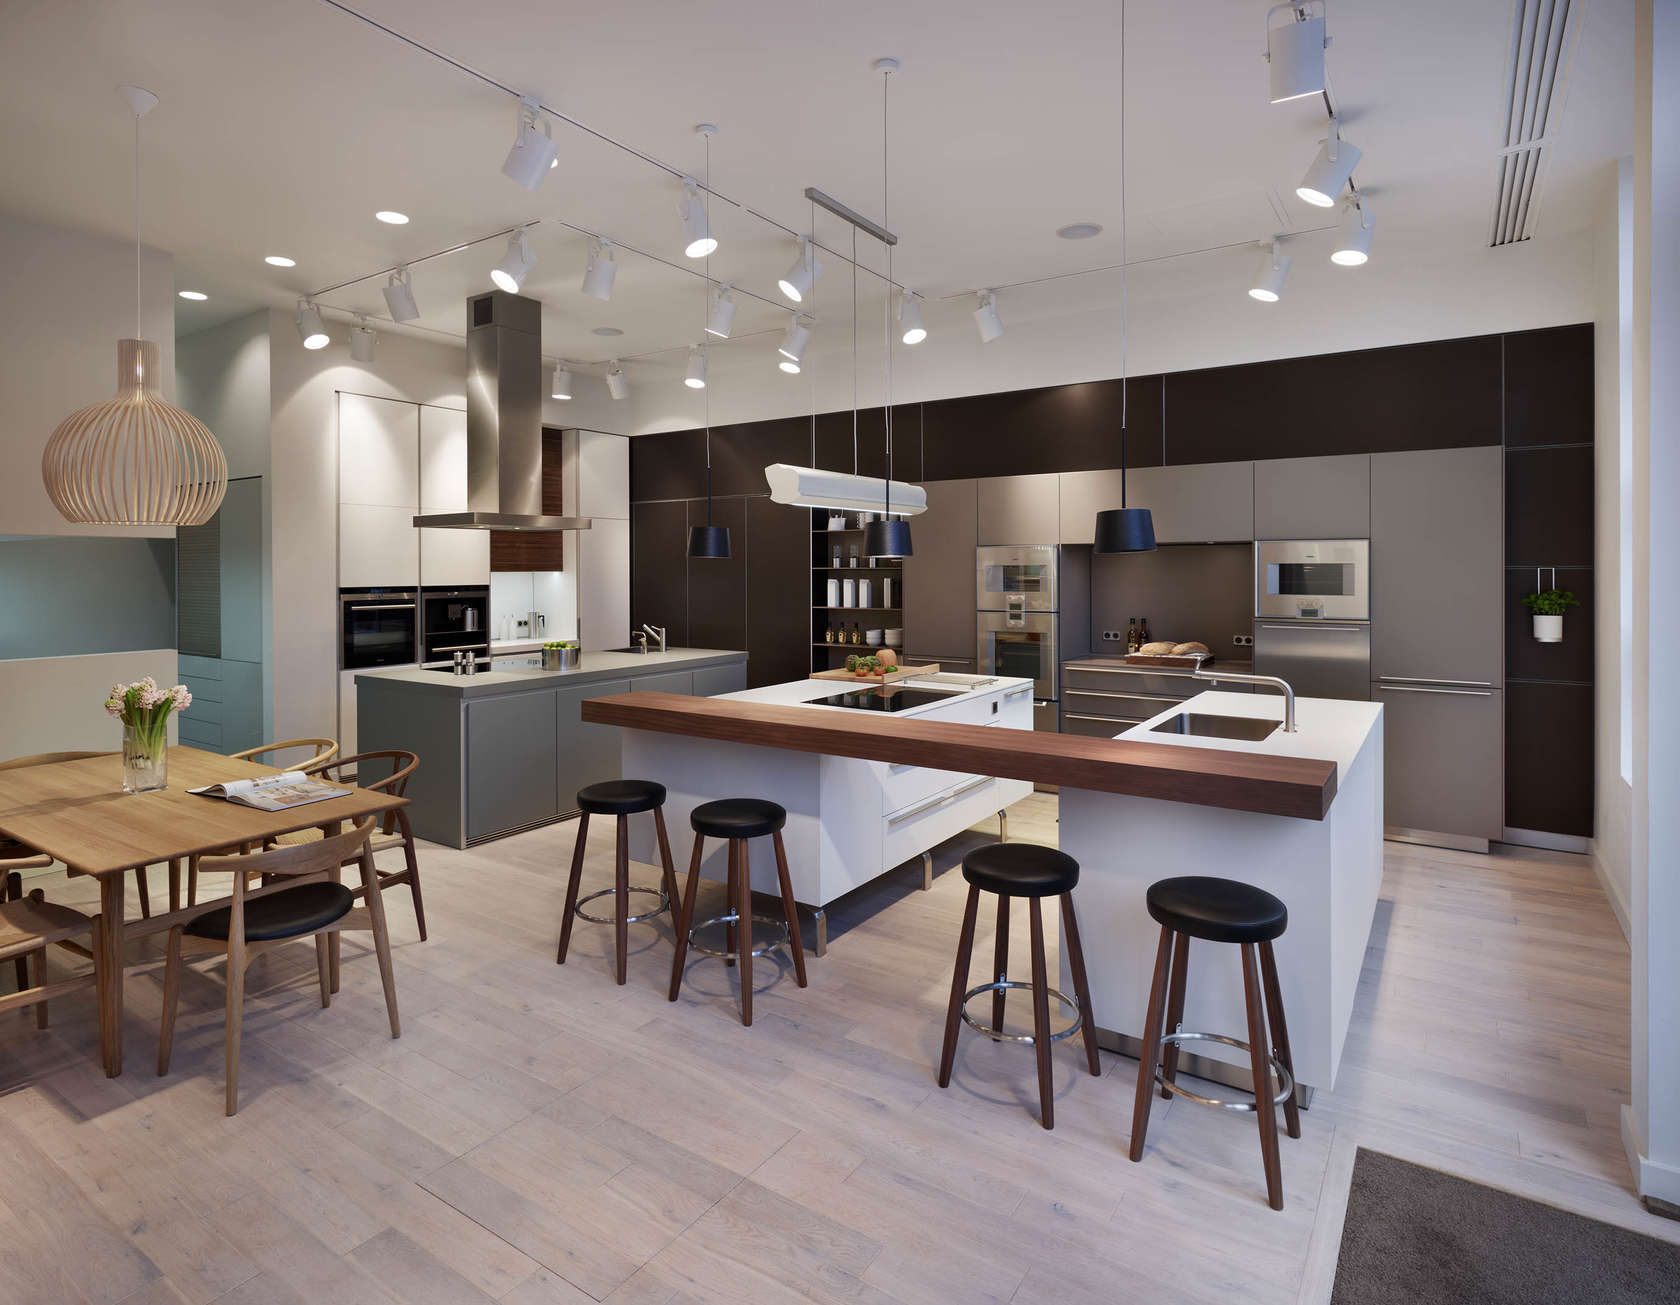 kitchen architecture s bulthaup showroom in cheshire